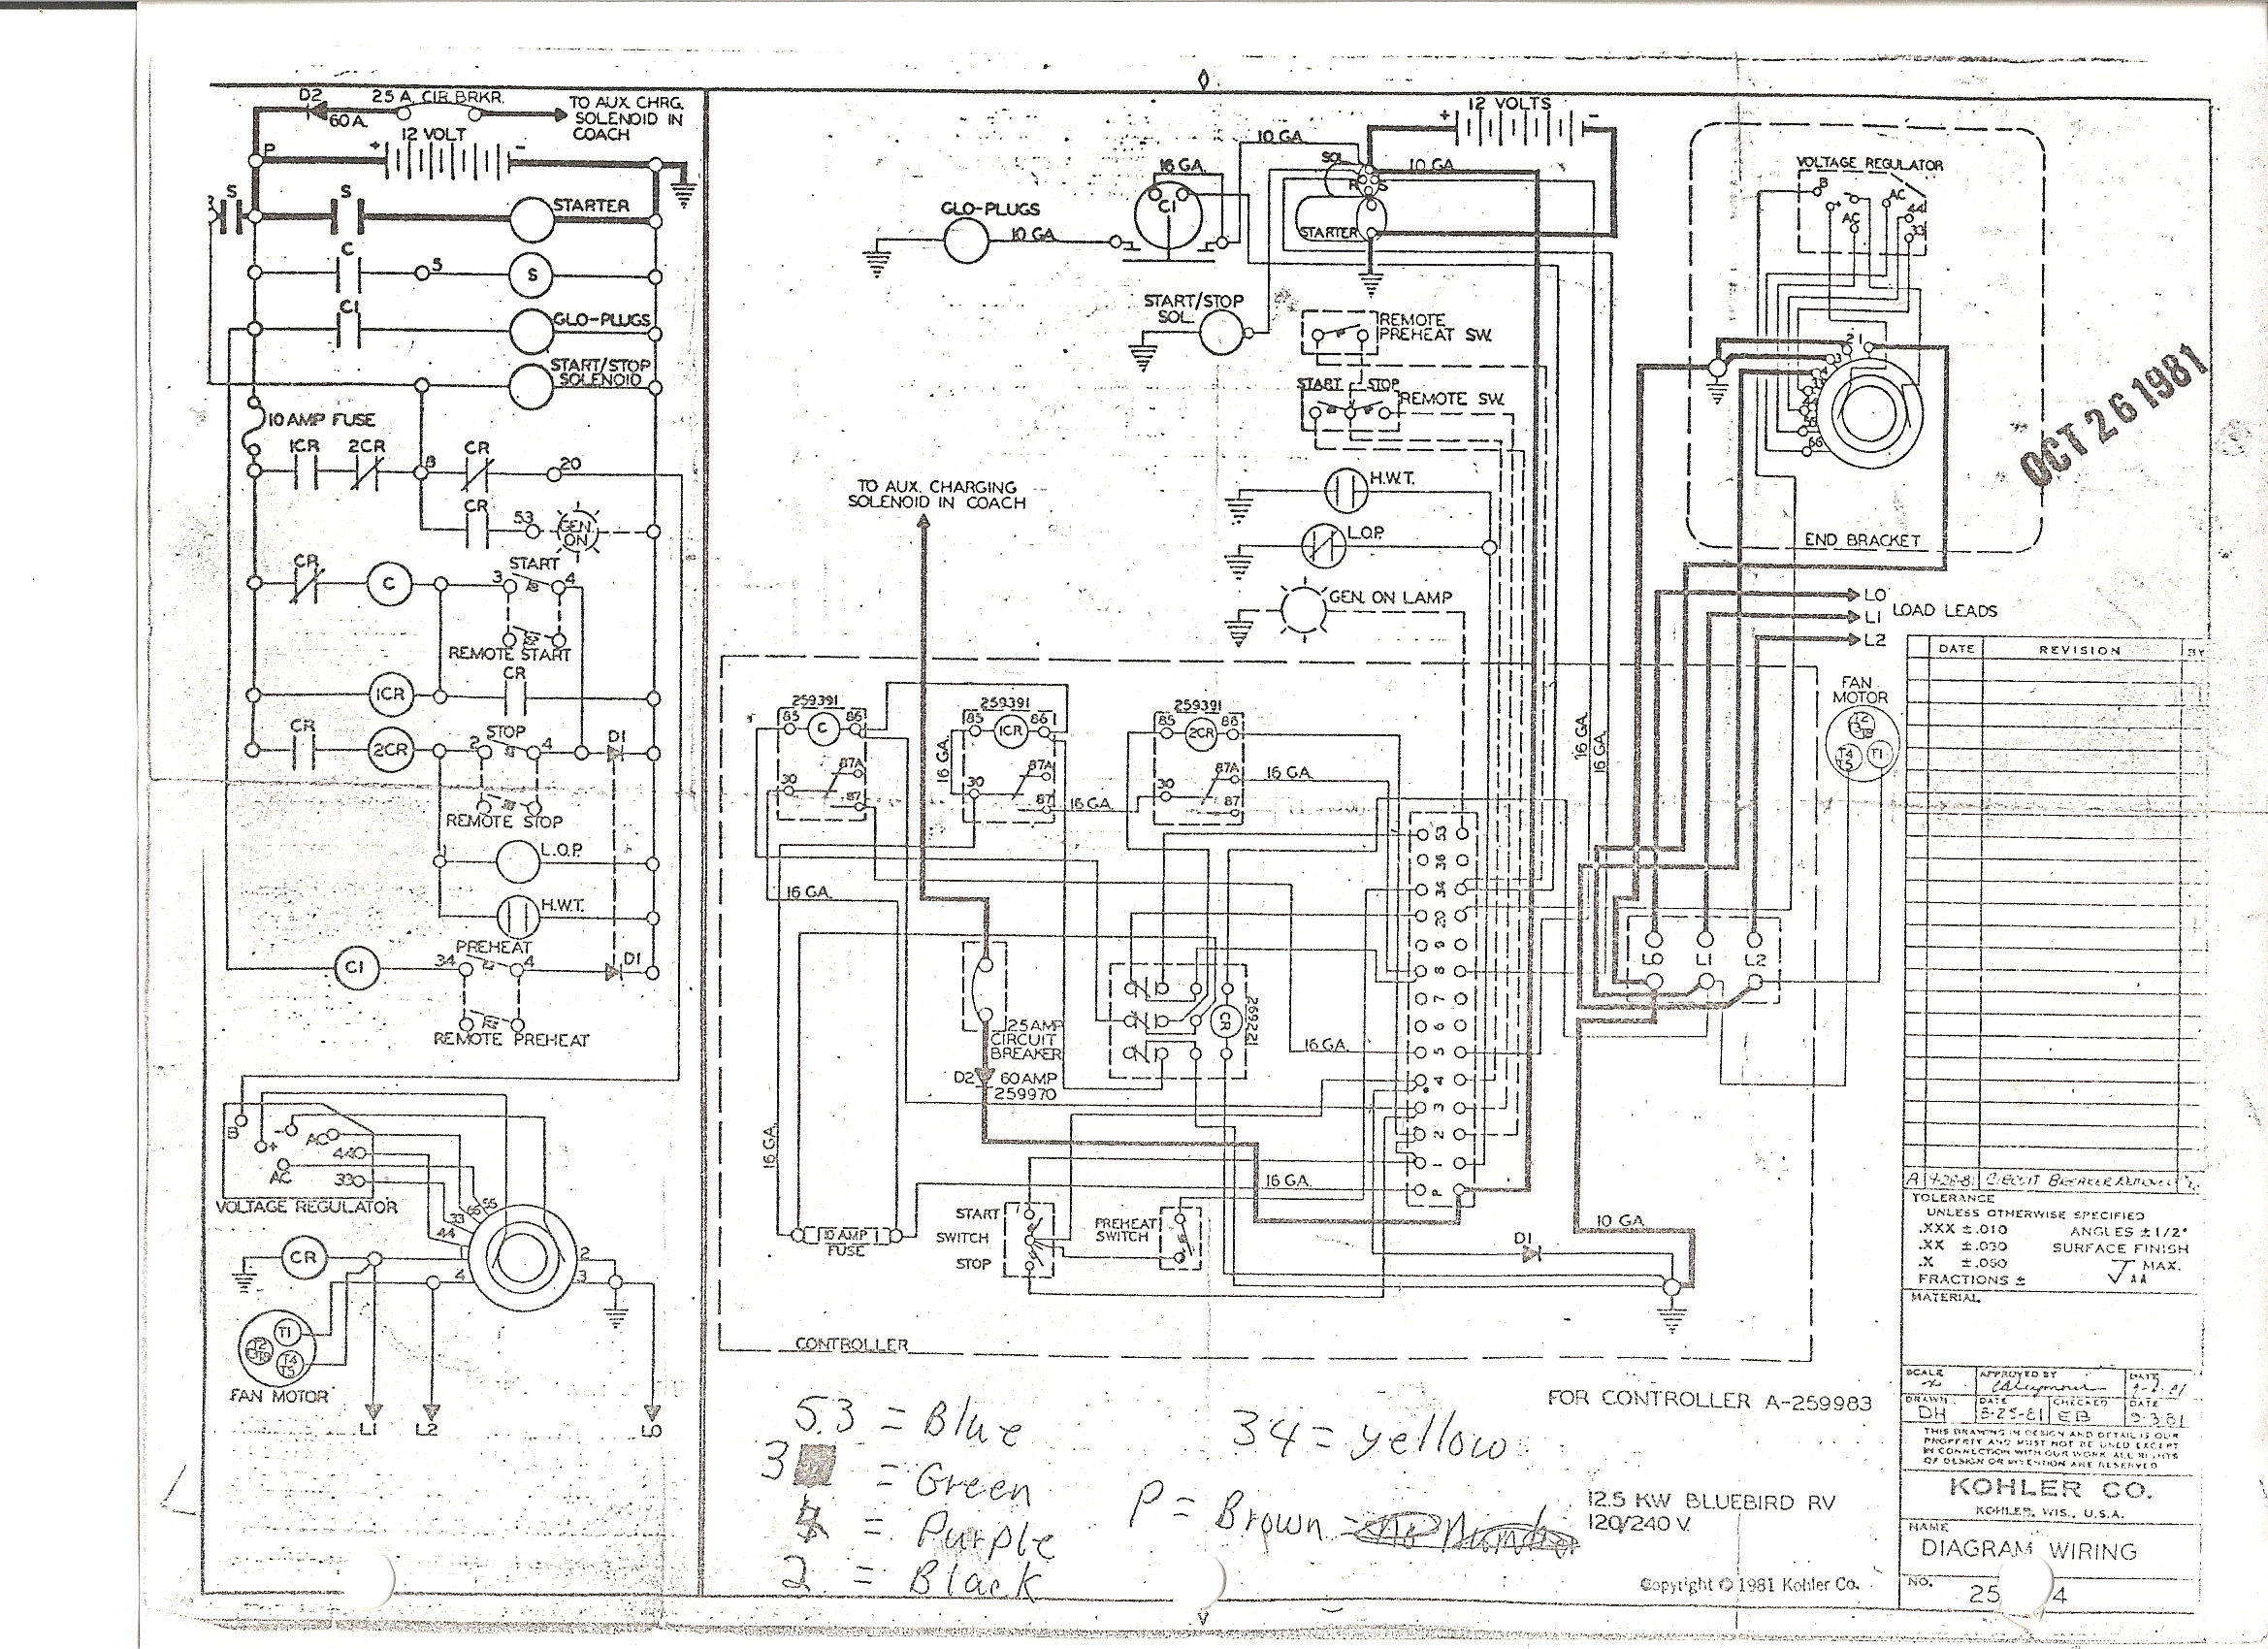 Kohler Generators Wiring Diagram : Single phase transformer wiring diagram get free